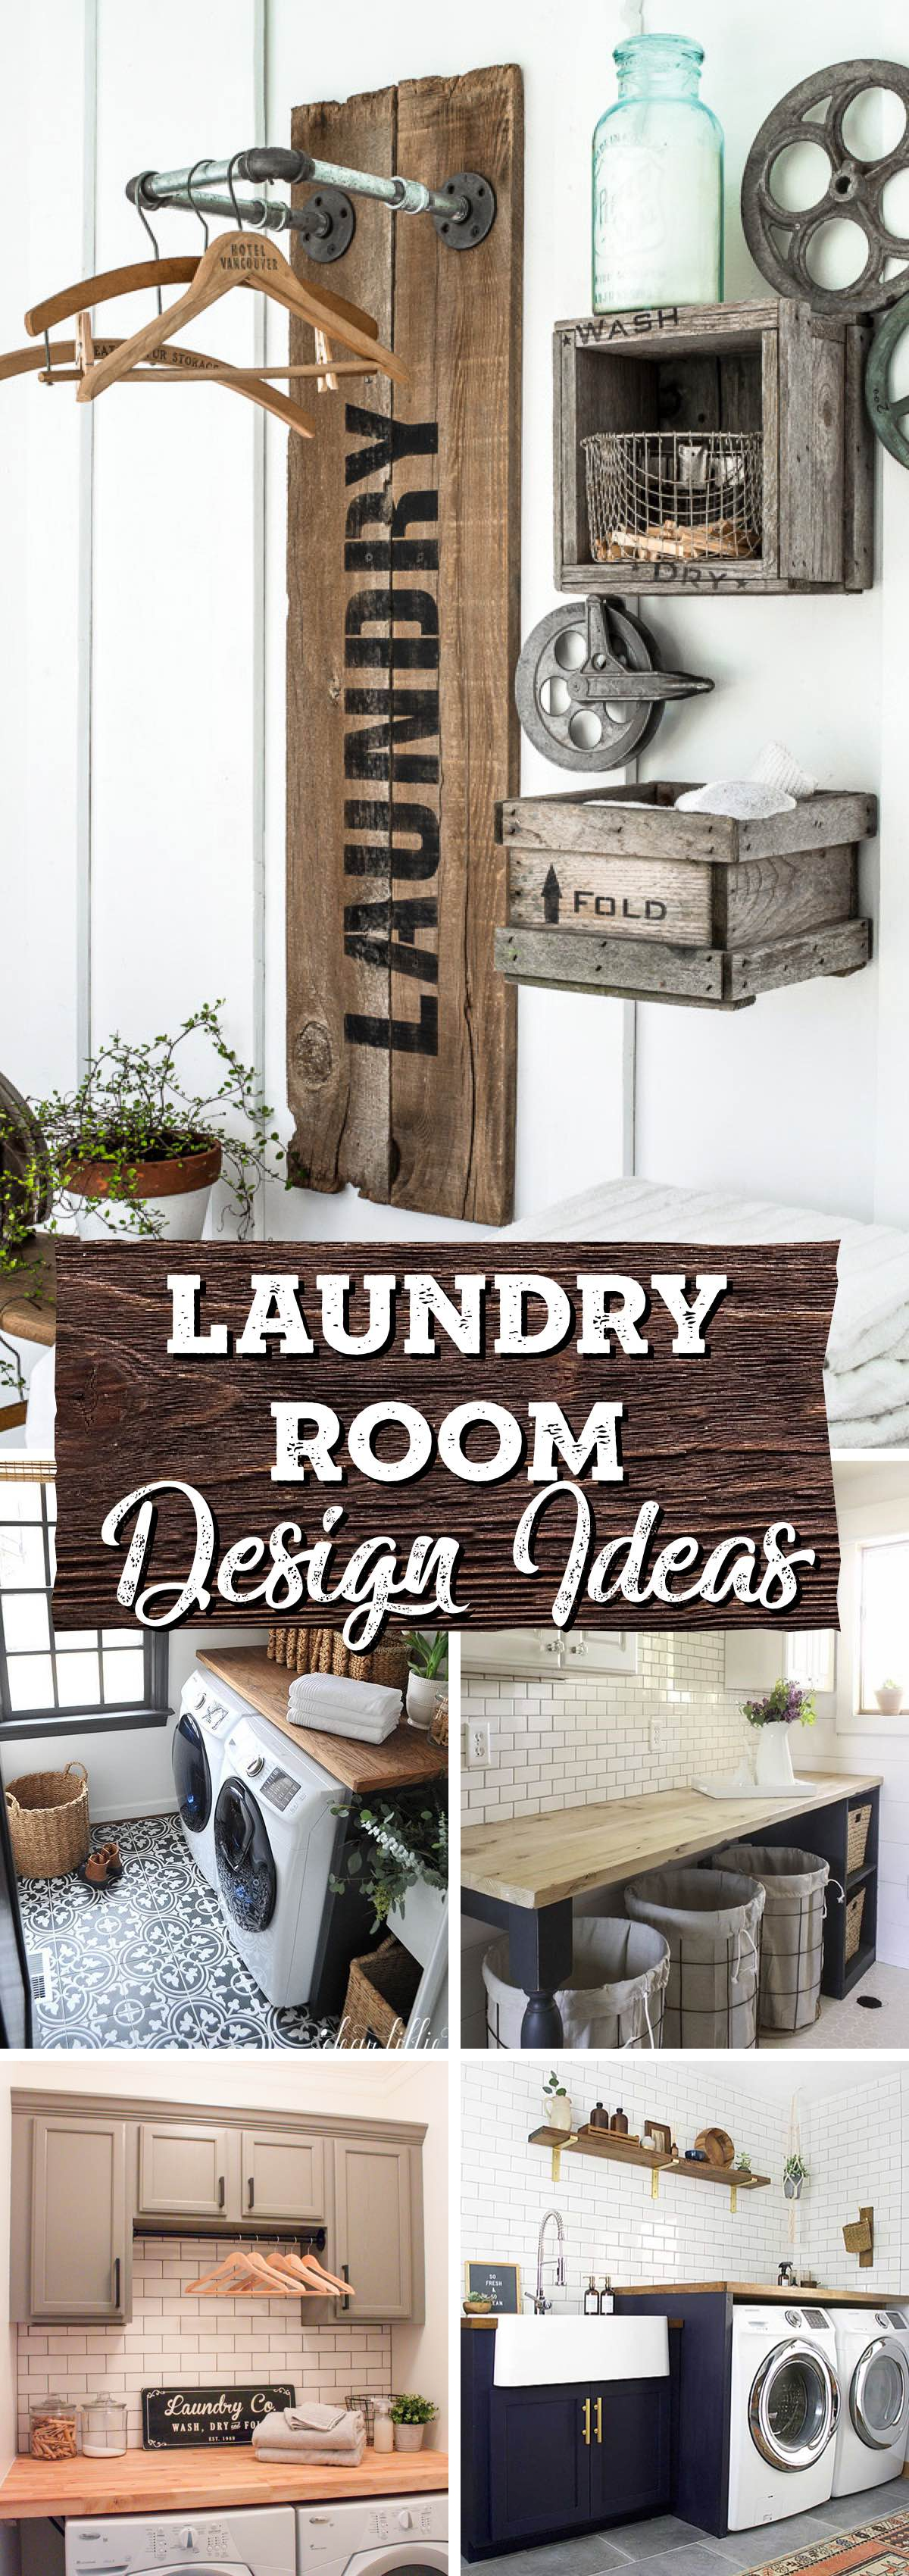 Incredible Laundry Room Design Ideas